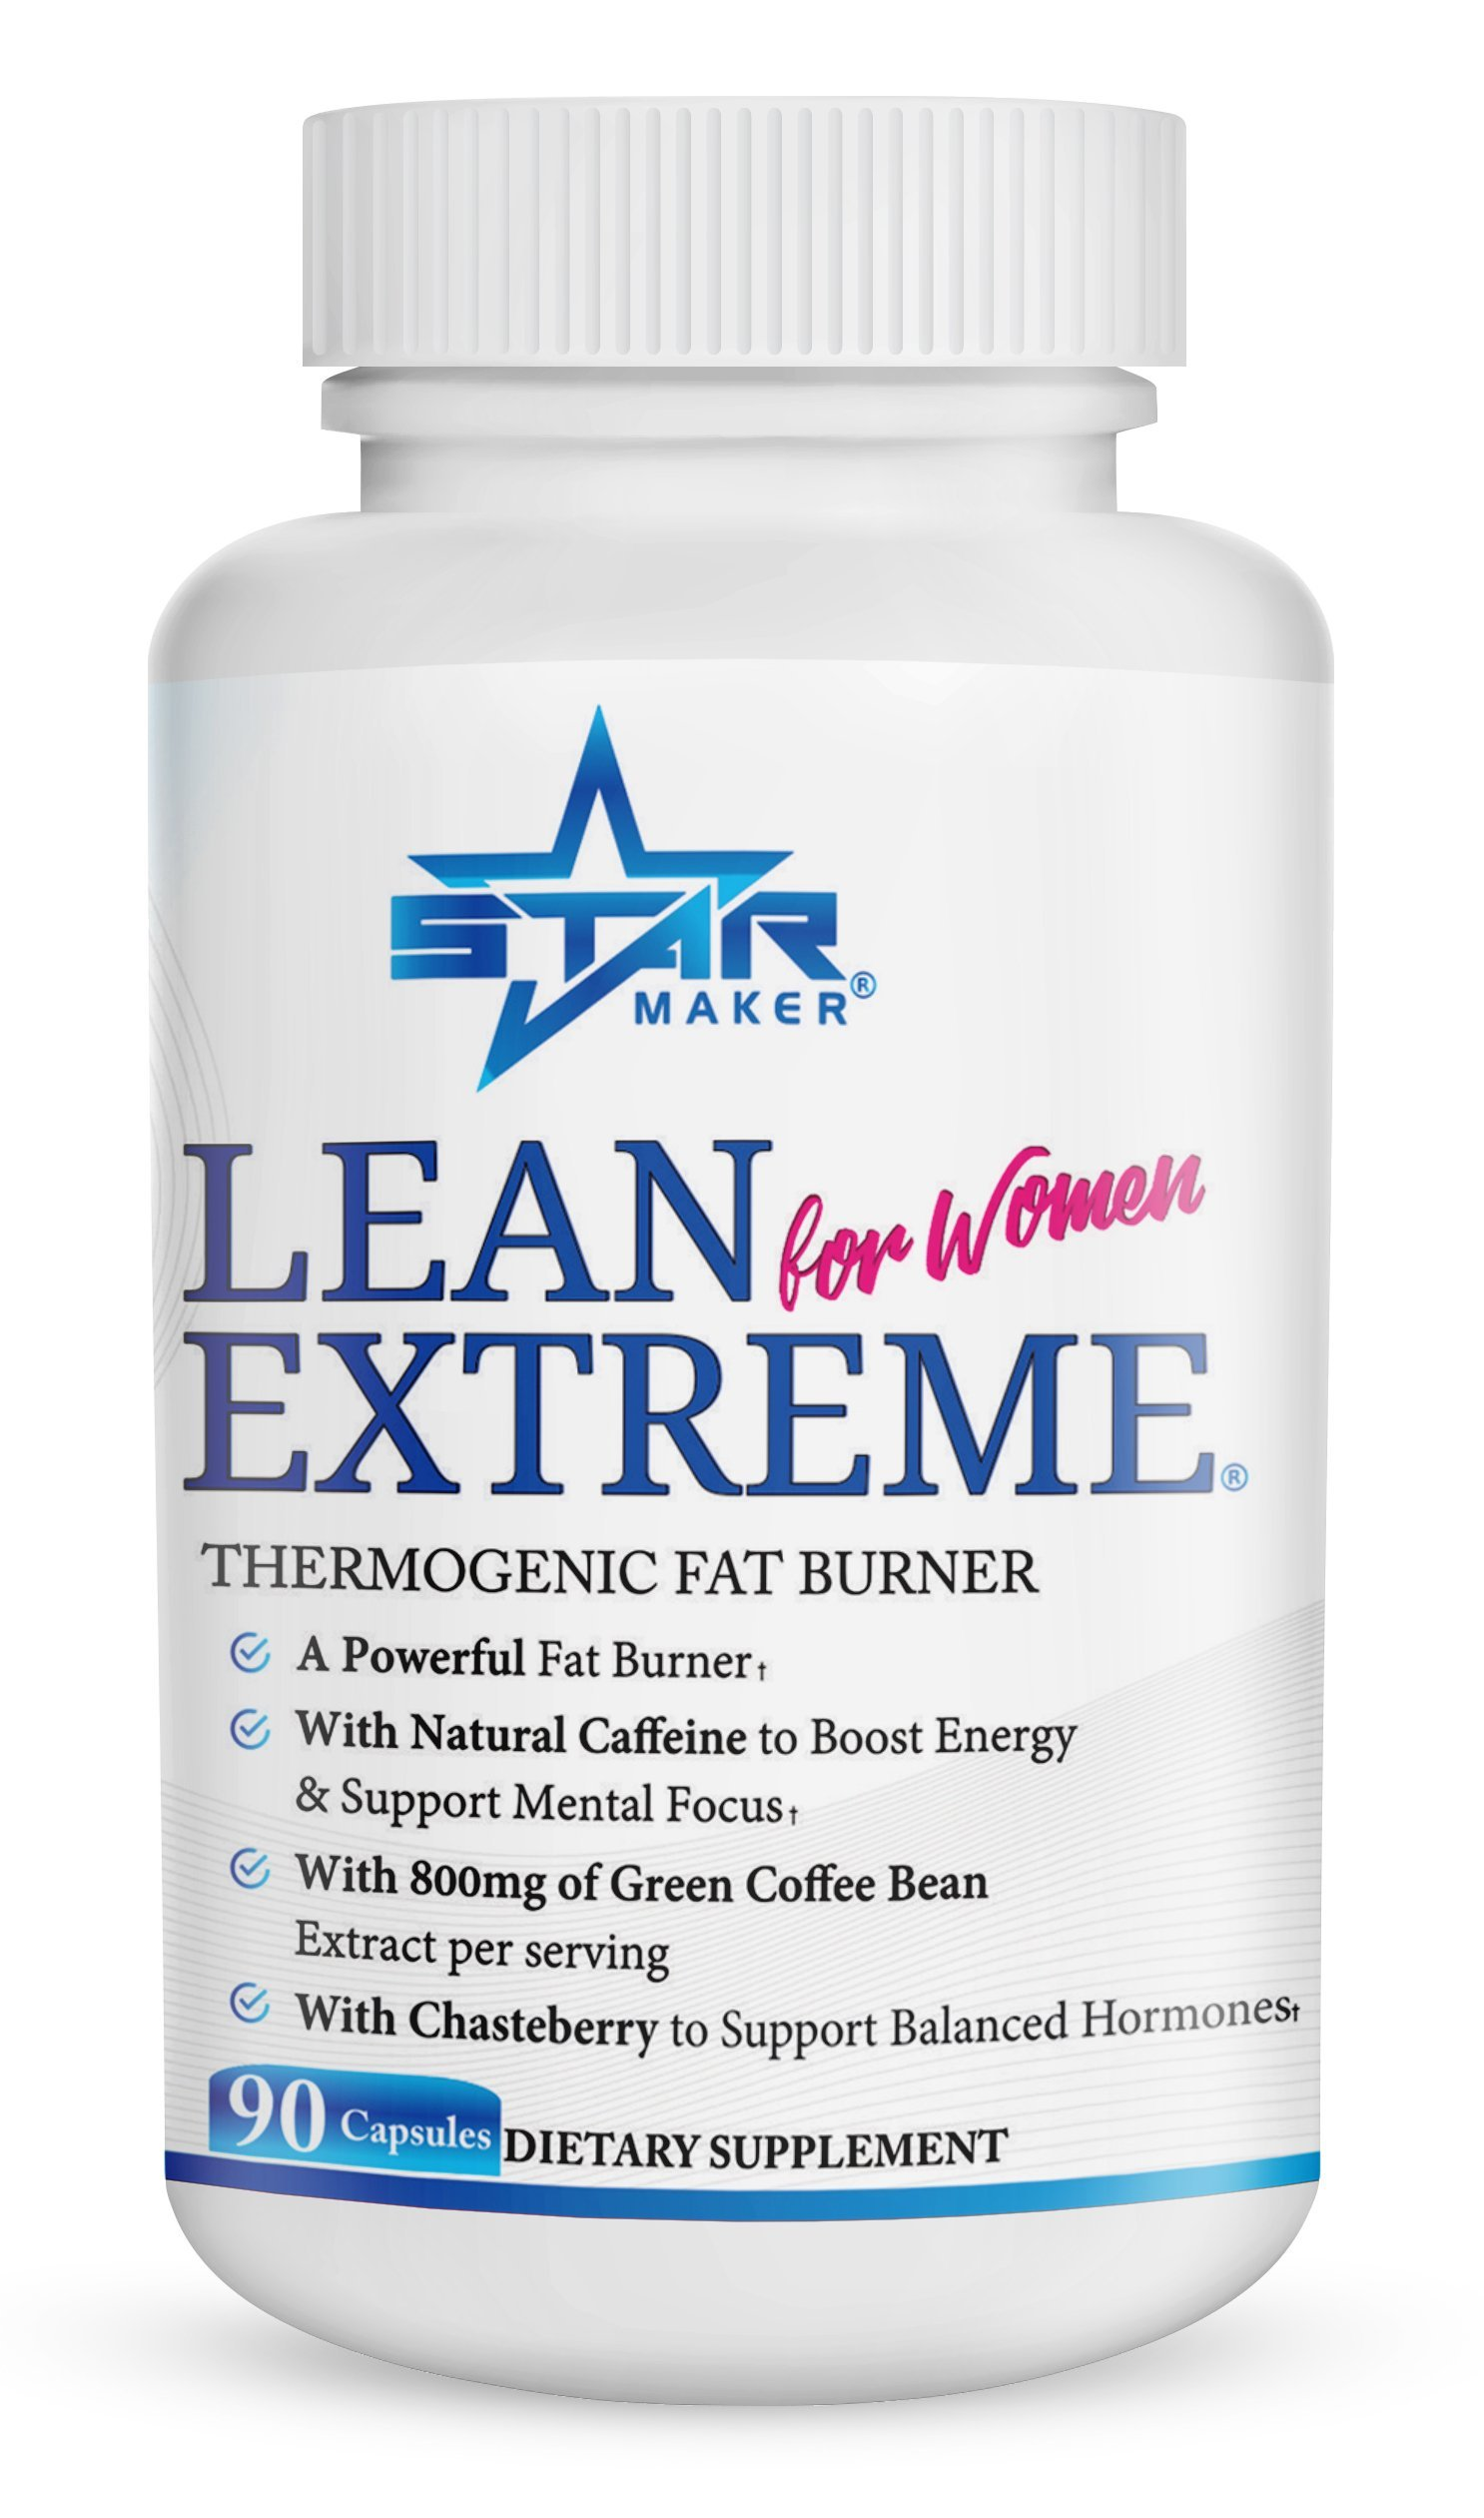 Lean Extreme Keto Weight Loss Diet Pills and Thermogenic Fat Burner for Women - 4X More Green Coffee Bean, Appetite Suppressant & Energy Booster, Supports Balanced Hormones, 90-Count by STARMAKER